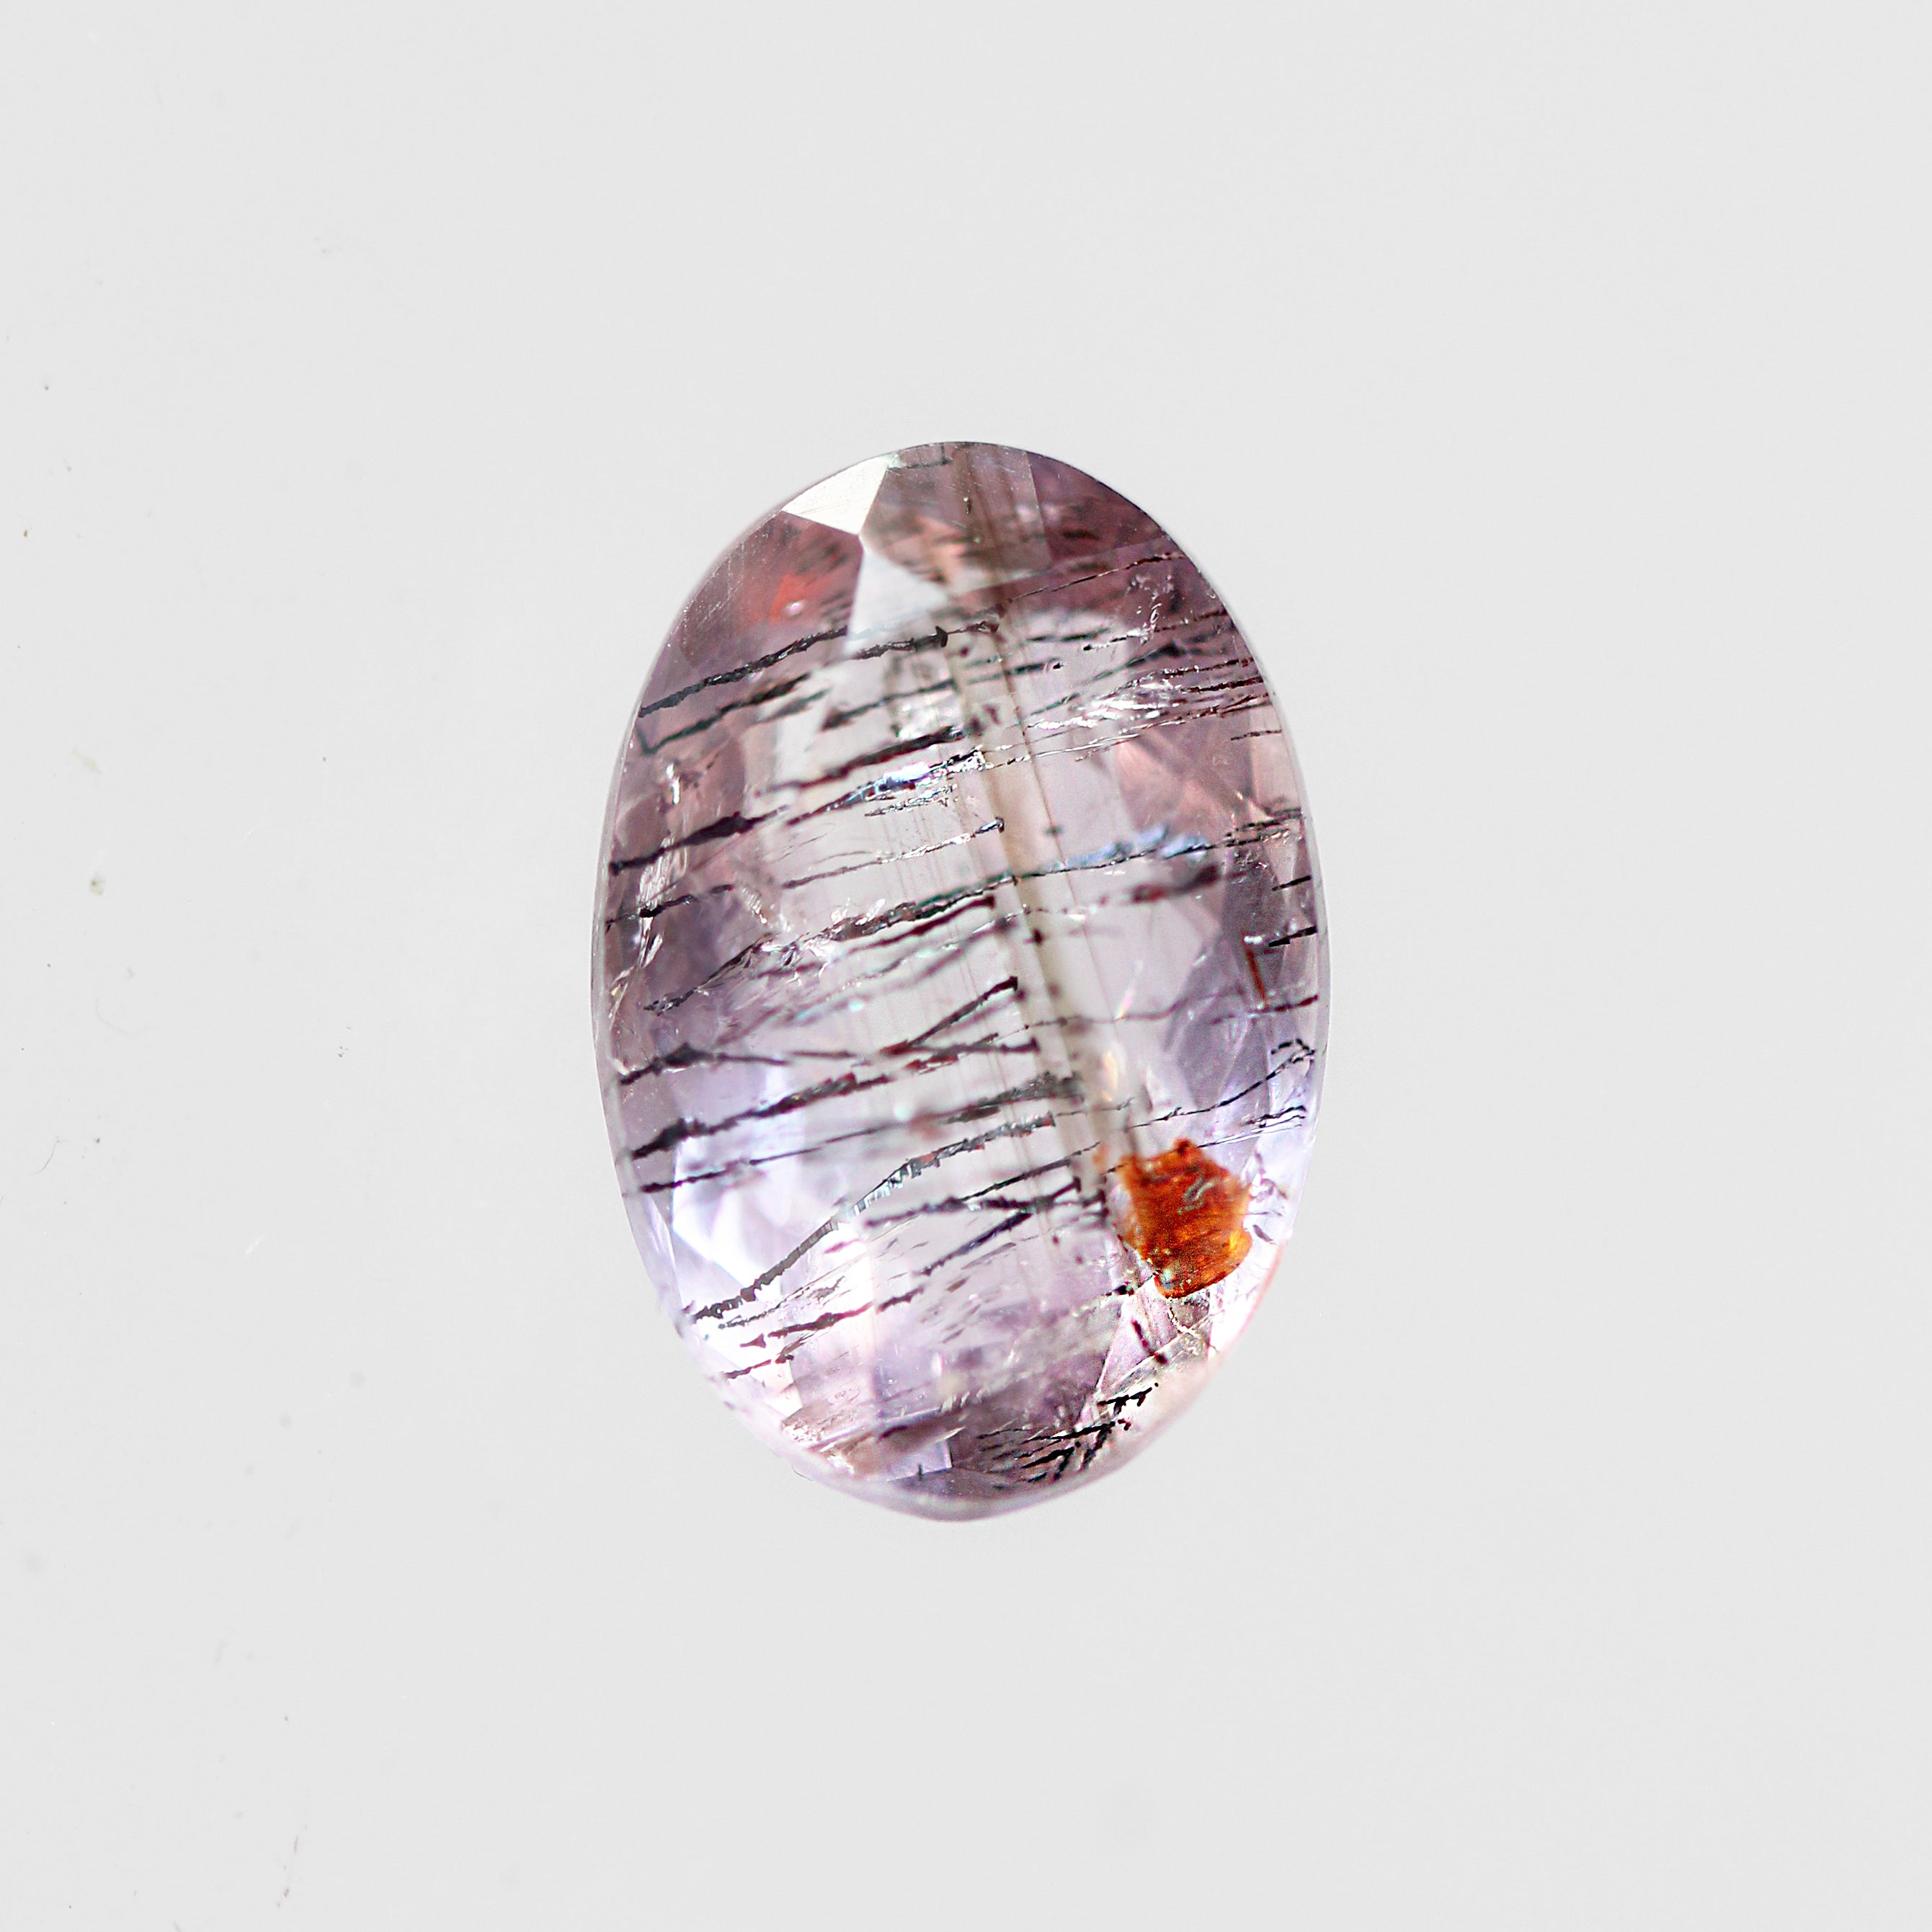 4.44 Carat Oval Quartz- Inventory Code OBQR444 - Celestial Diamonds ® by Midwinter Co.